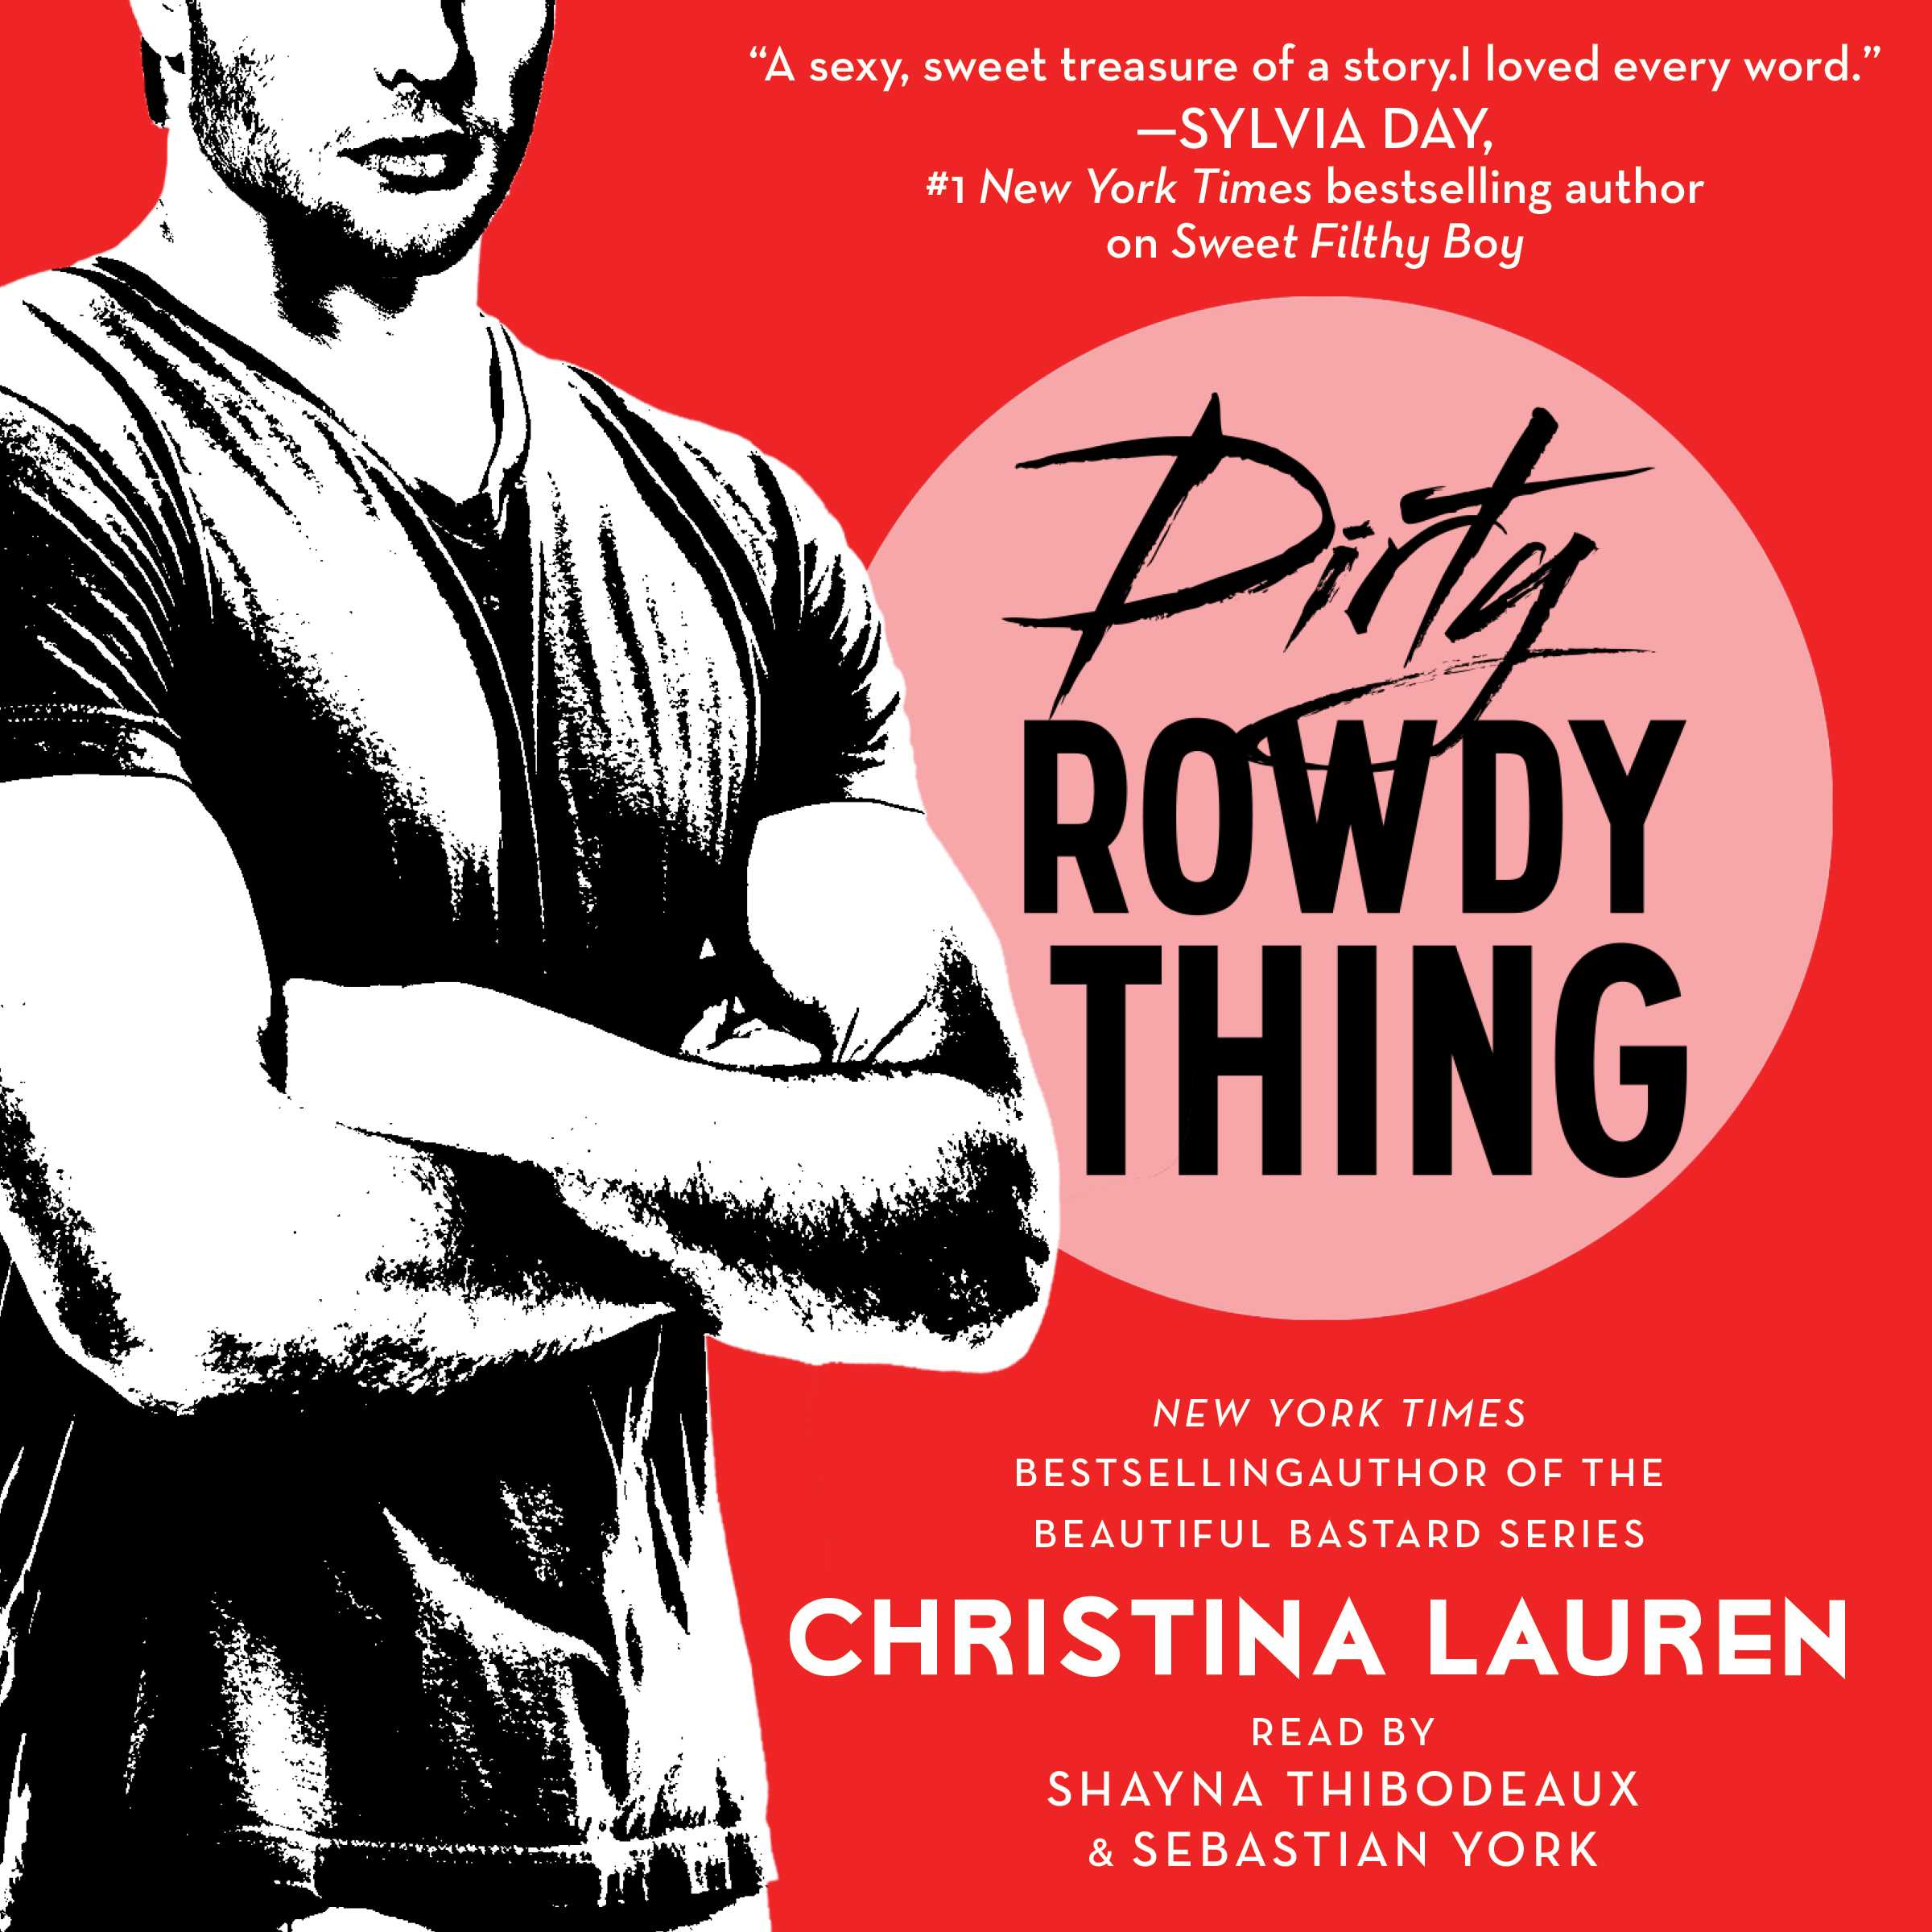 Dirty-rowdy-thing-9781442374607_hr